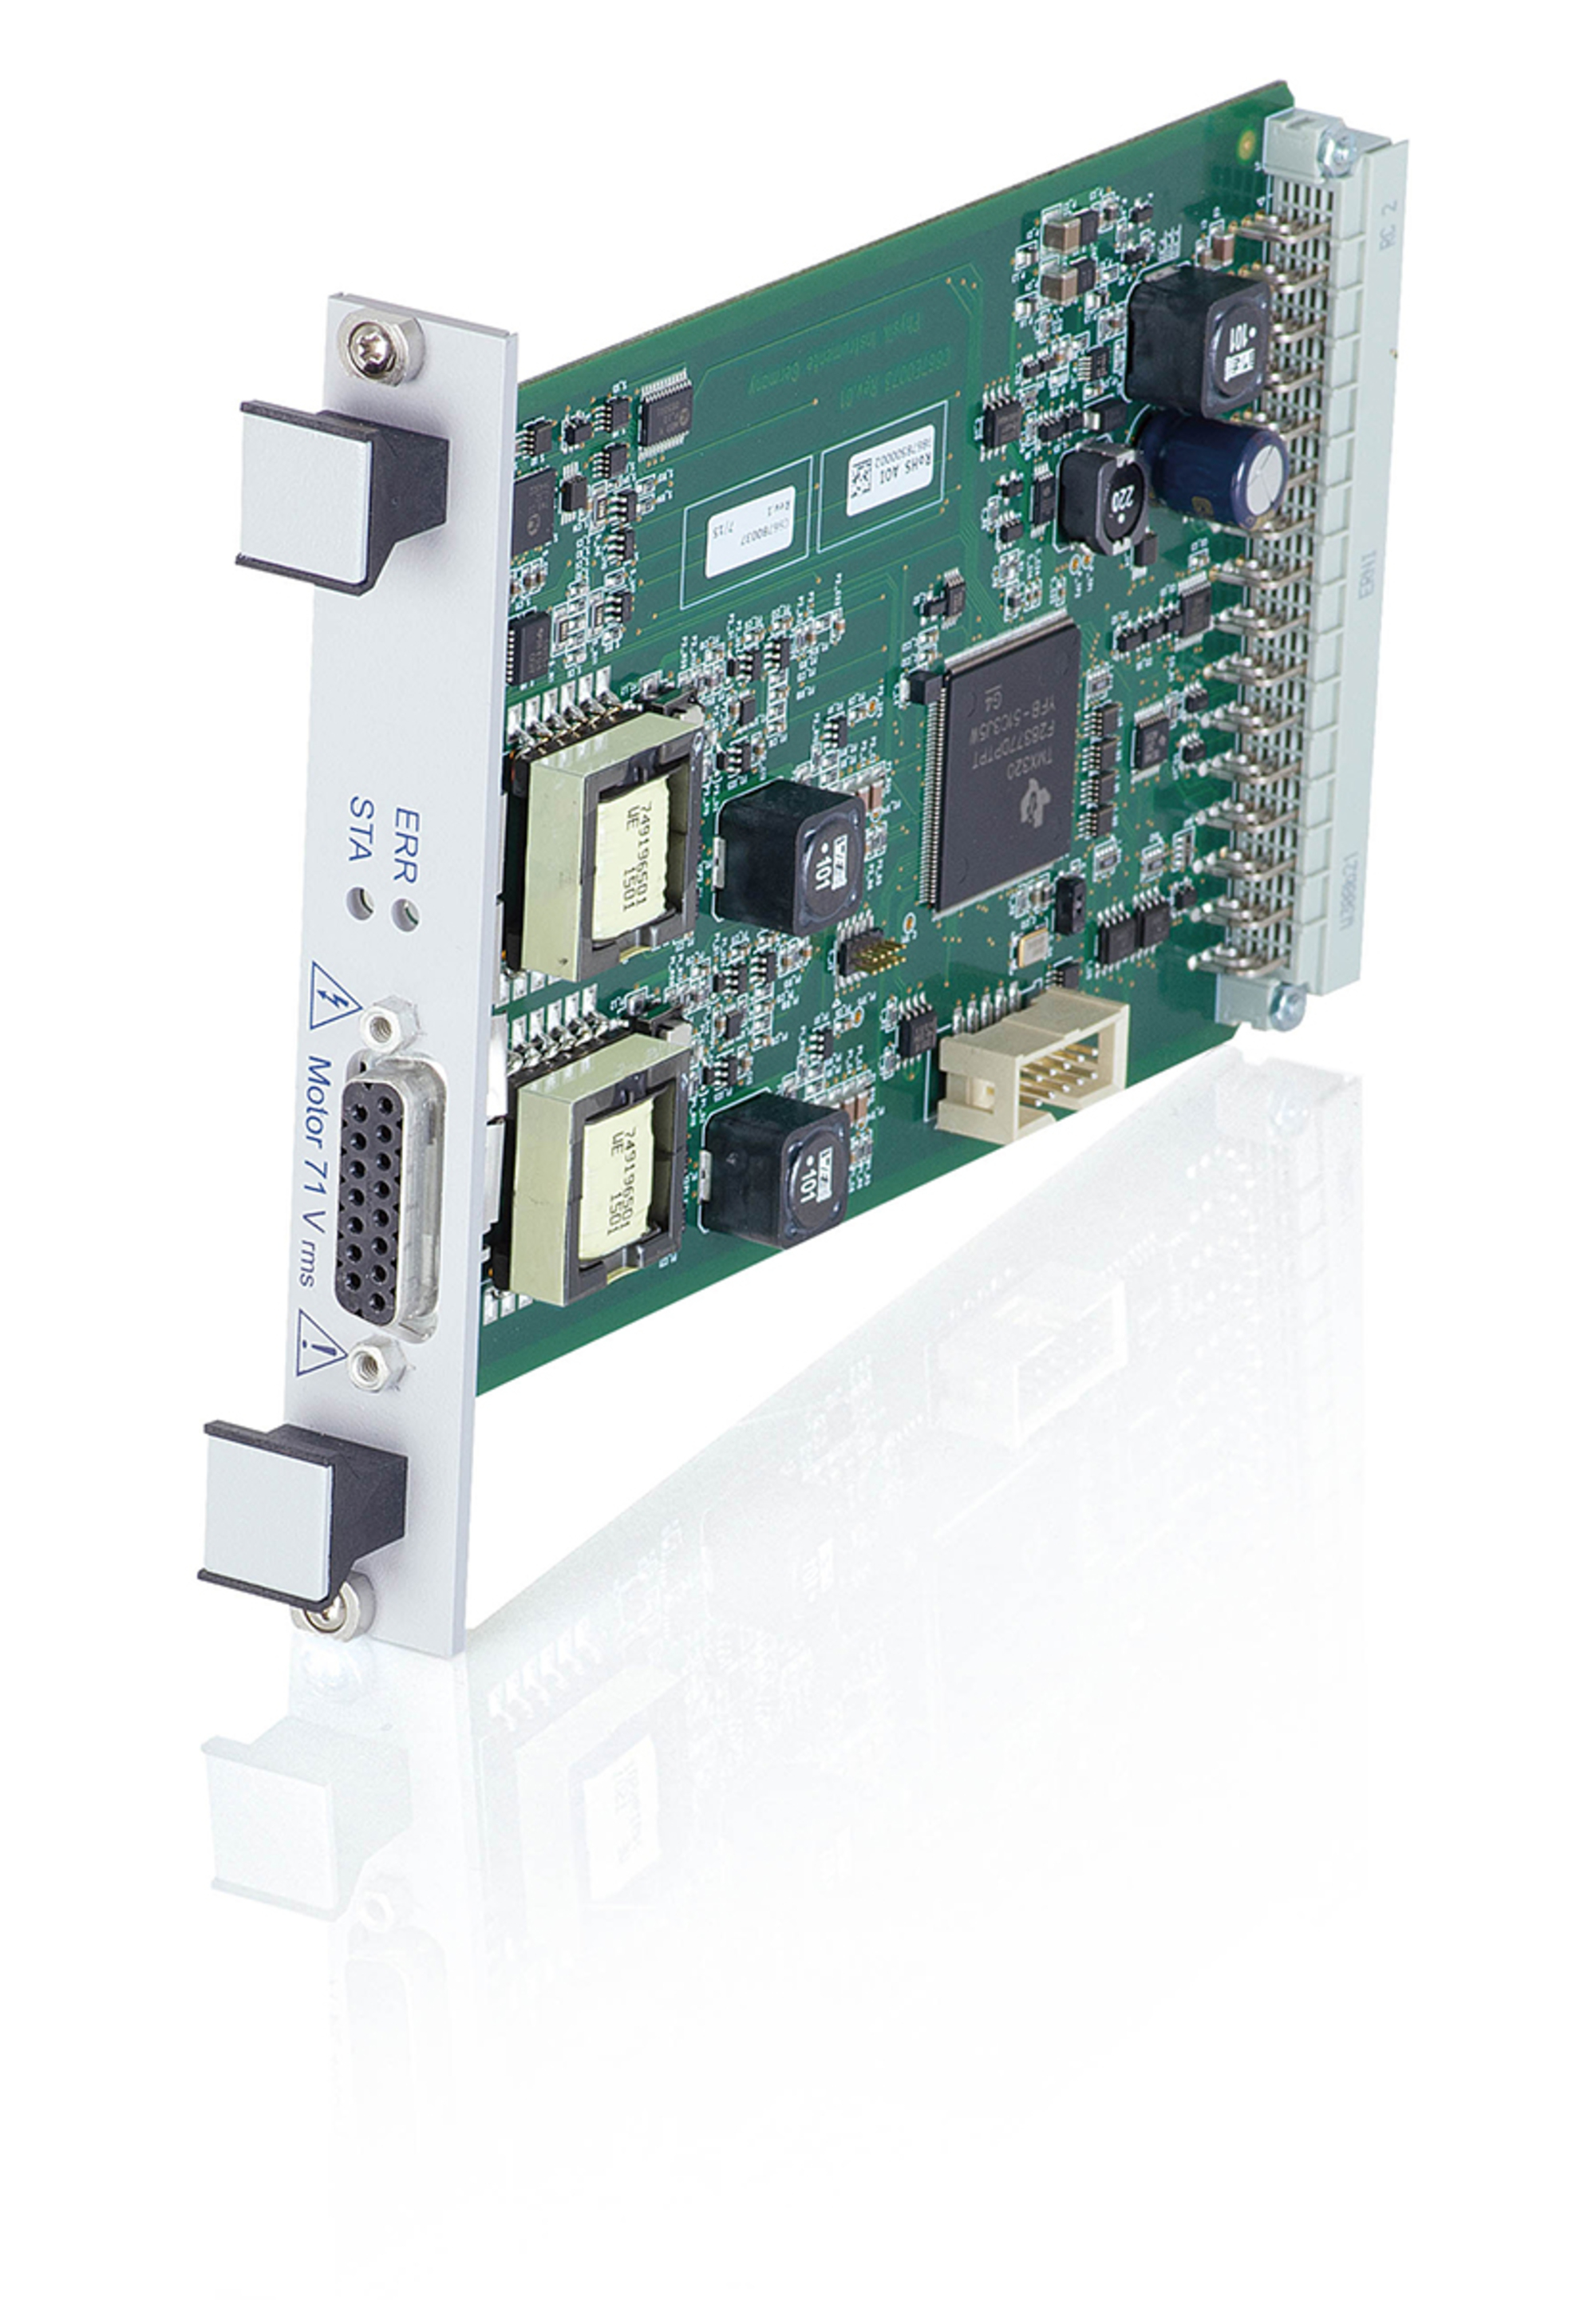 C 86710c885 Piline Controller Module Voice Data Combination With Ethernet Switch For 885 Pimotionmaster Modular System